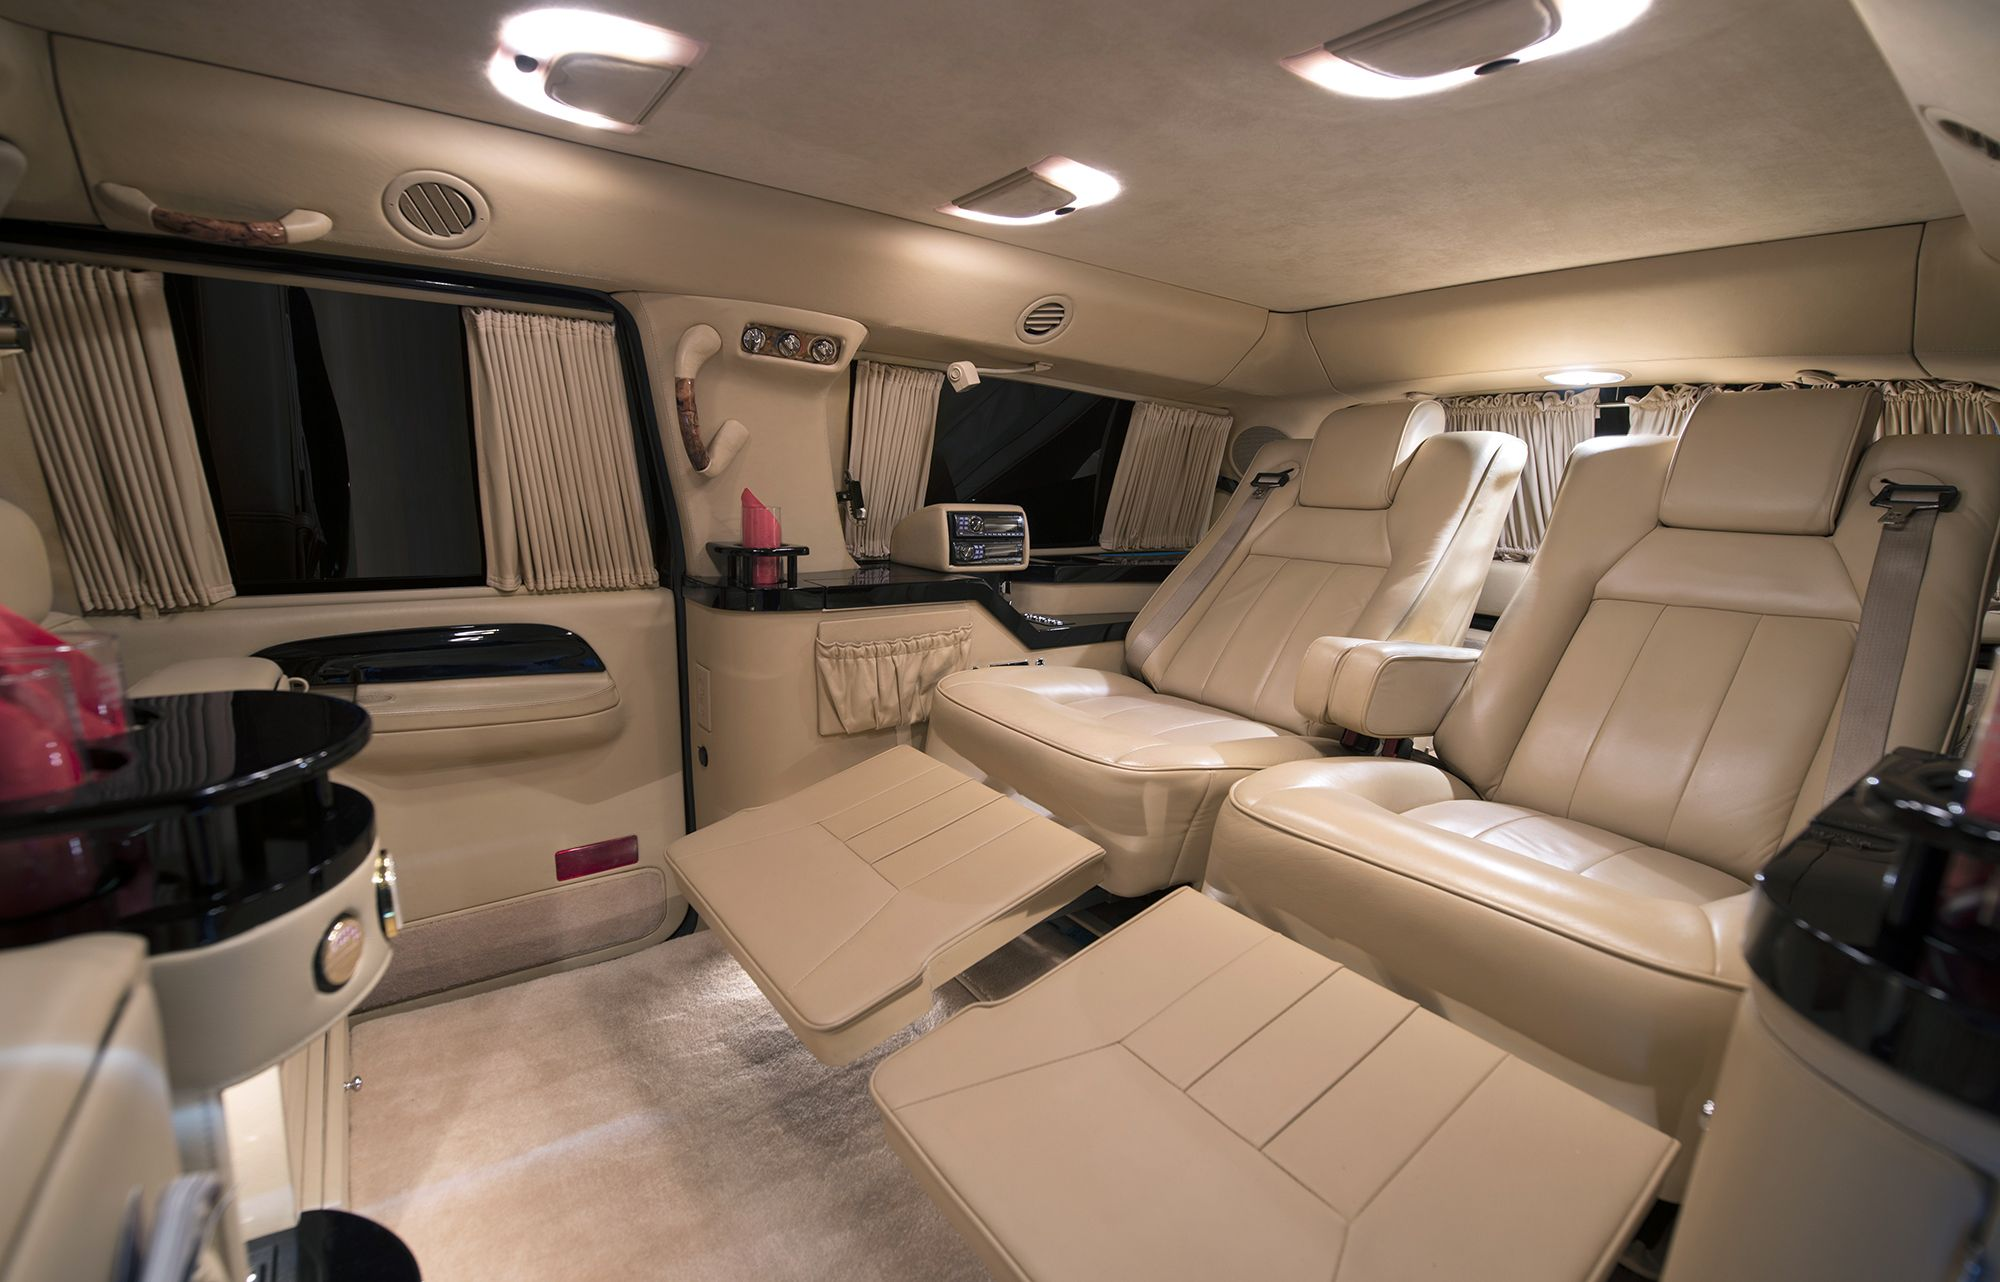 Wonderful Excursion Interior Upgrades | Excursion Stuff | Pinterest | Ford Excursion,  Ford And Ford Excursion Diesel